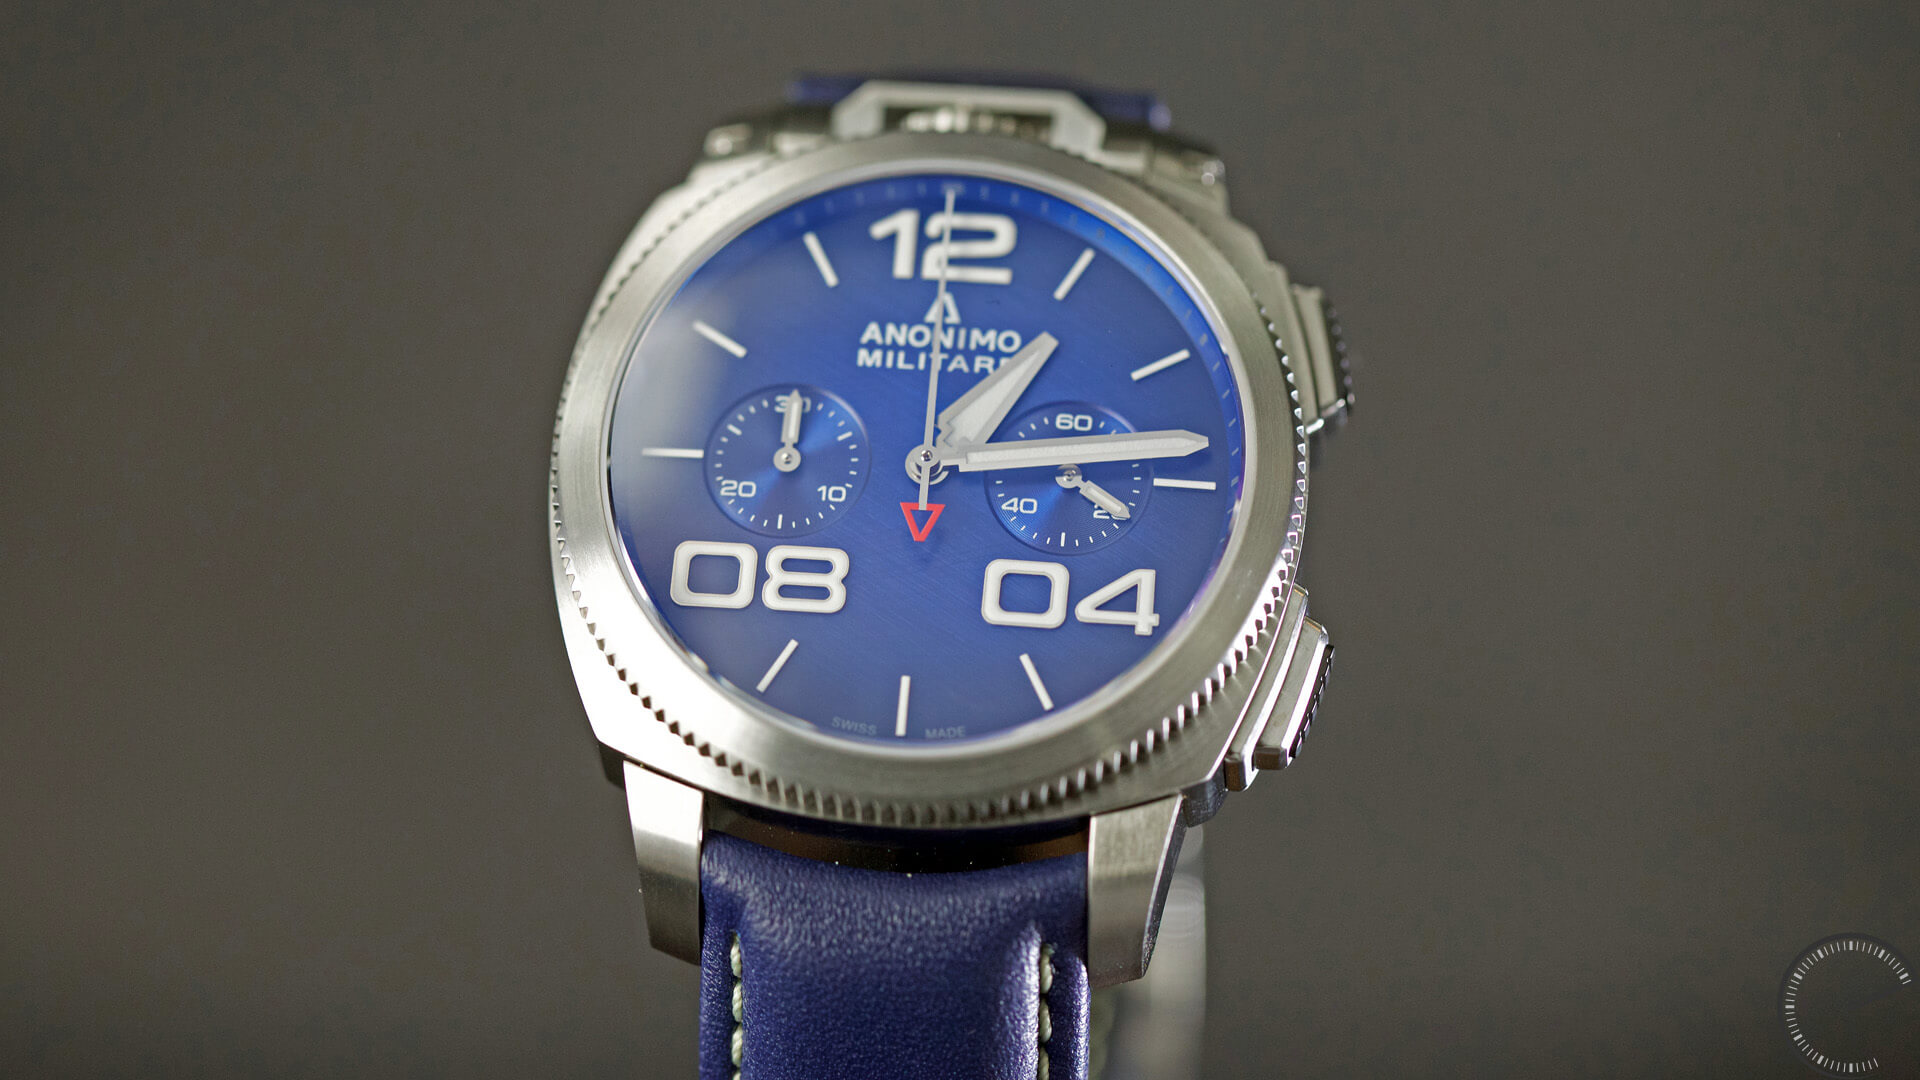 Anonimo_Militaire_Classic_Chrono_blue_dial_case1 - ESCAPEMENT magazine - watch reviews by Angus Davies